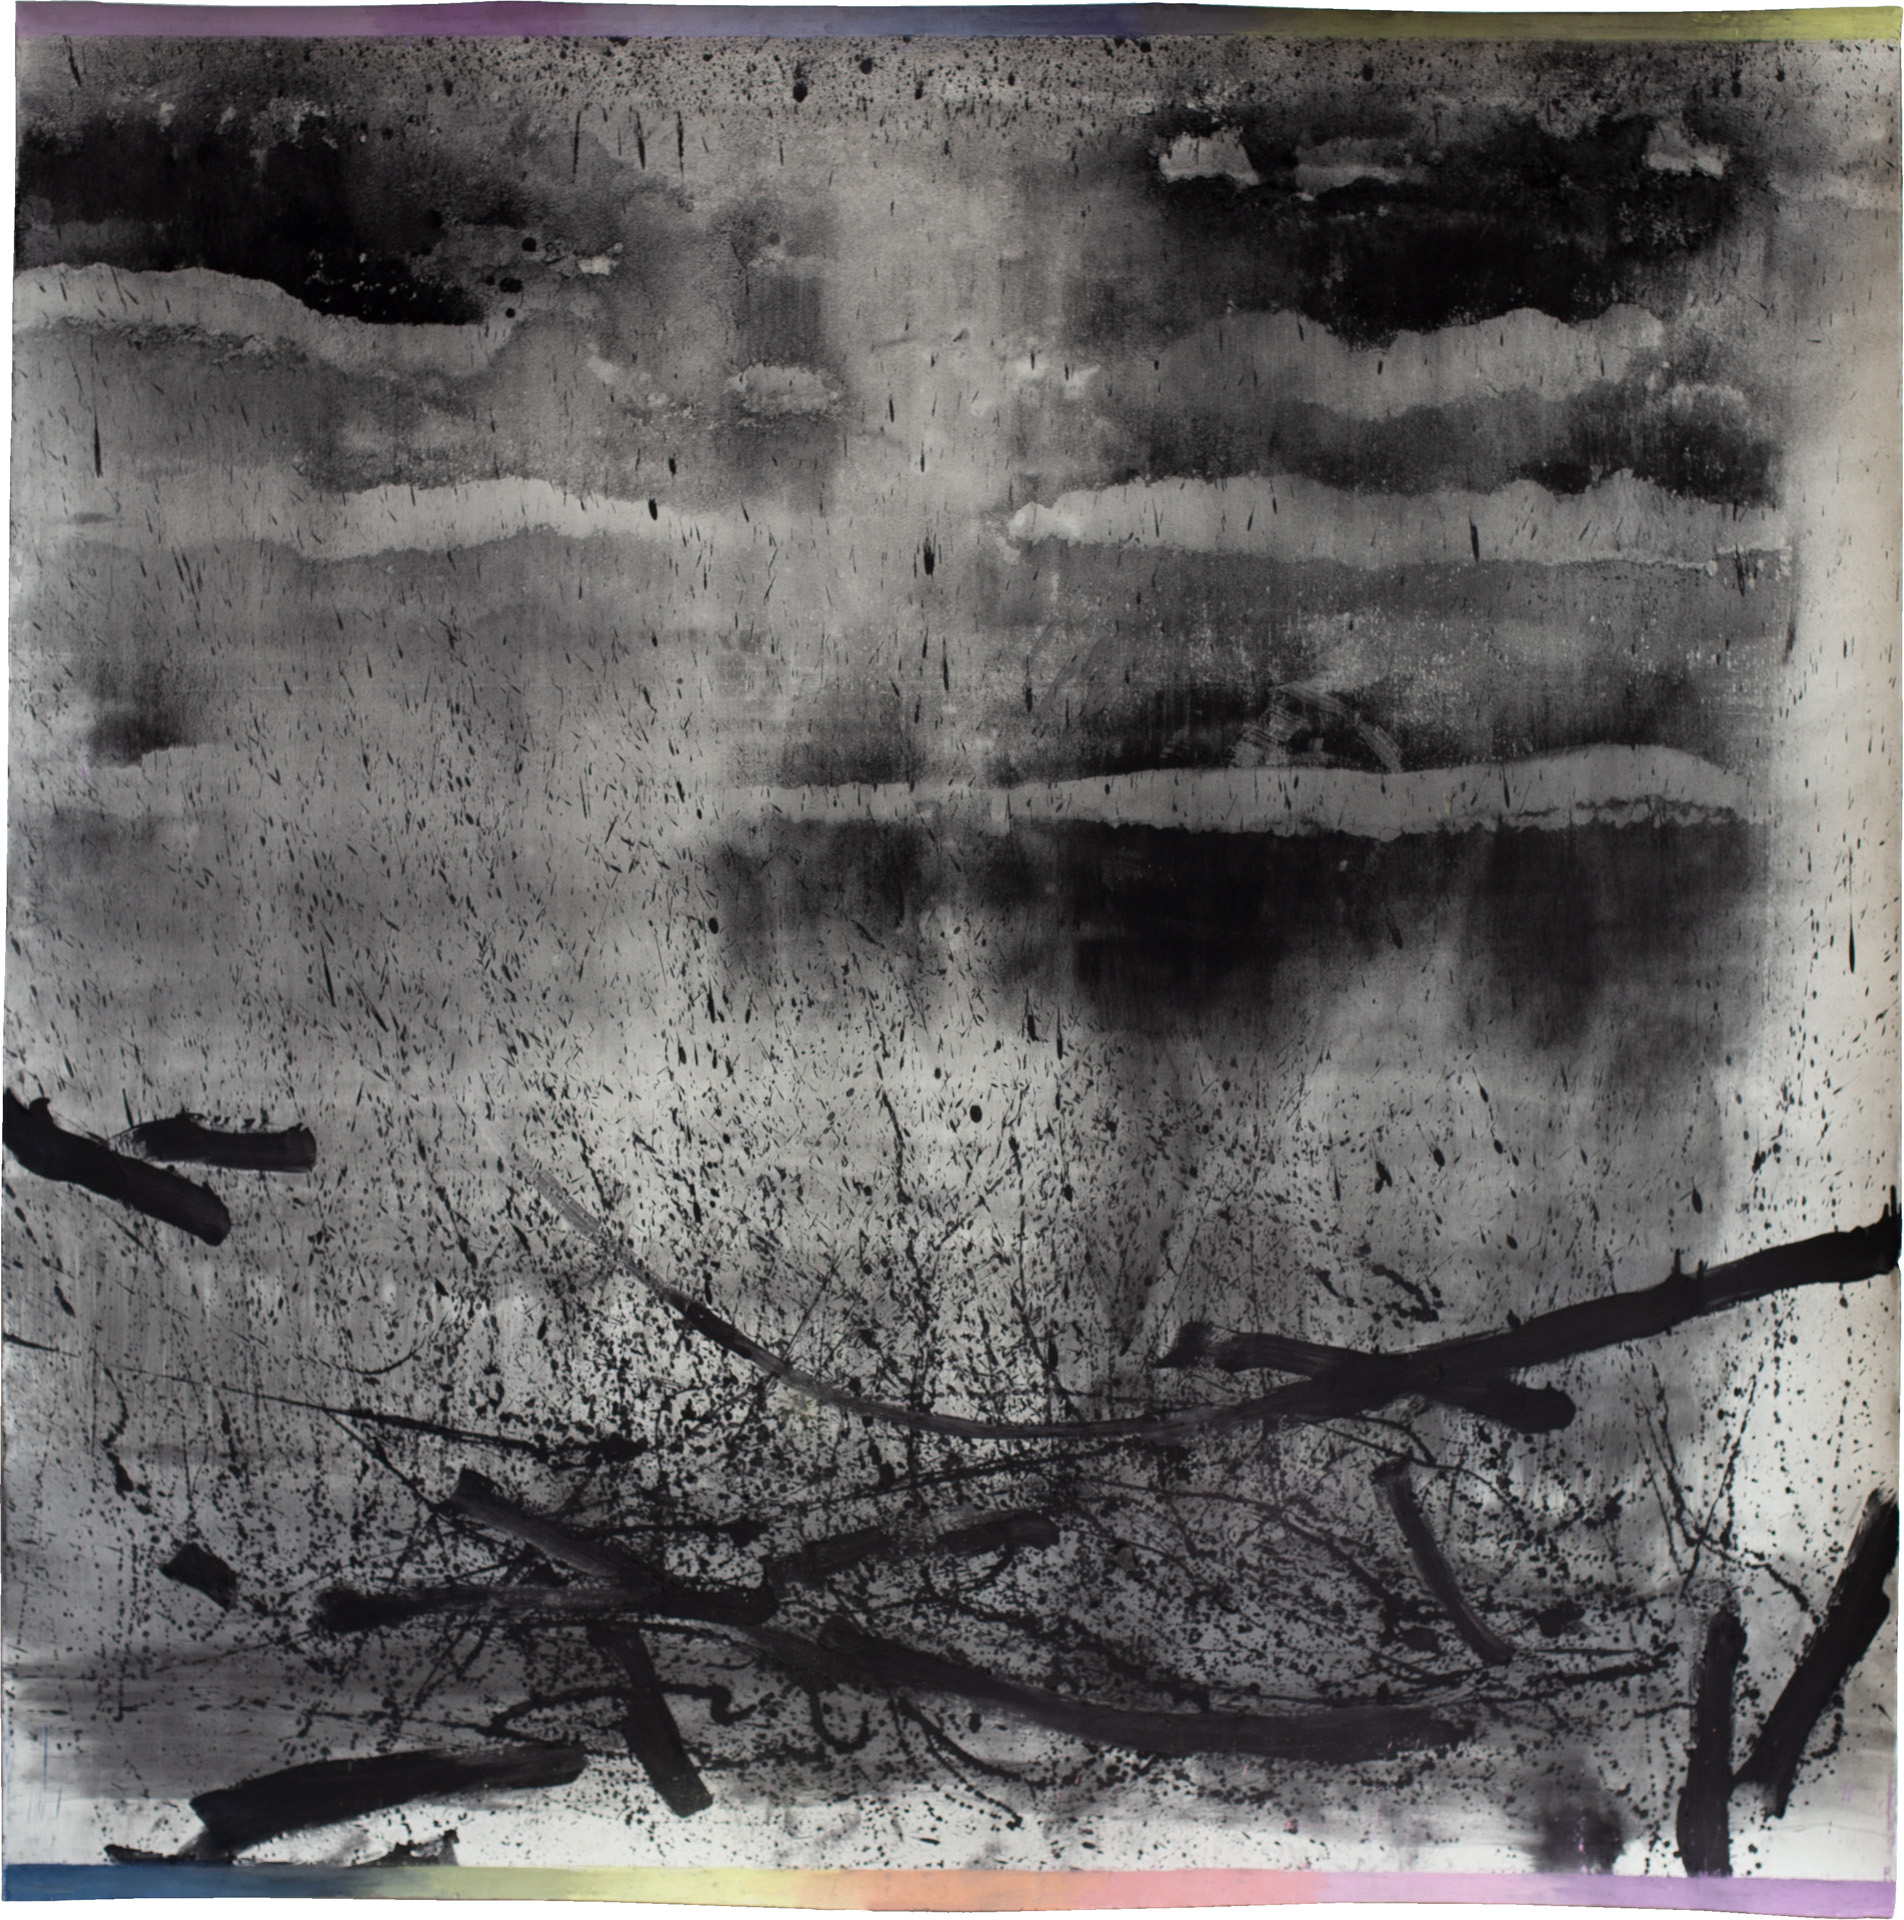 Nora Mona Bach – Weile / Saeculum, 2021, pastel, charcoal on paper, ca. 170 cm x 140 cm